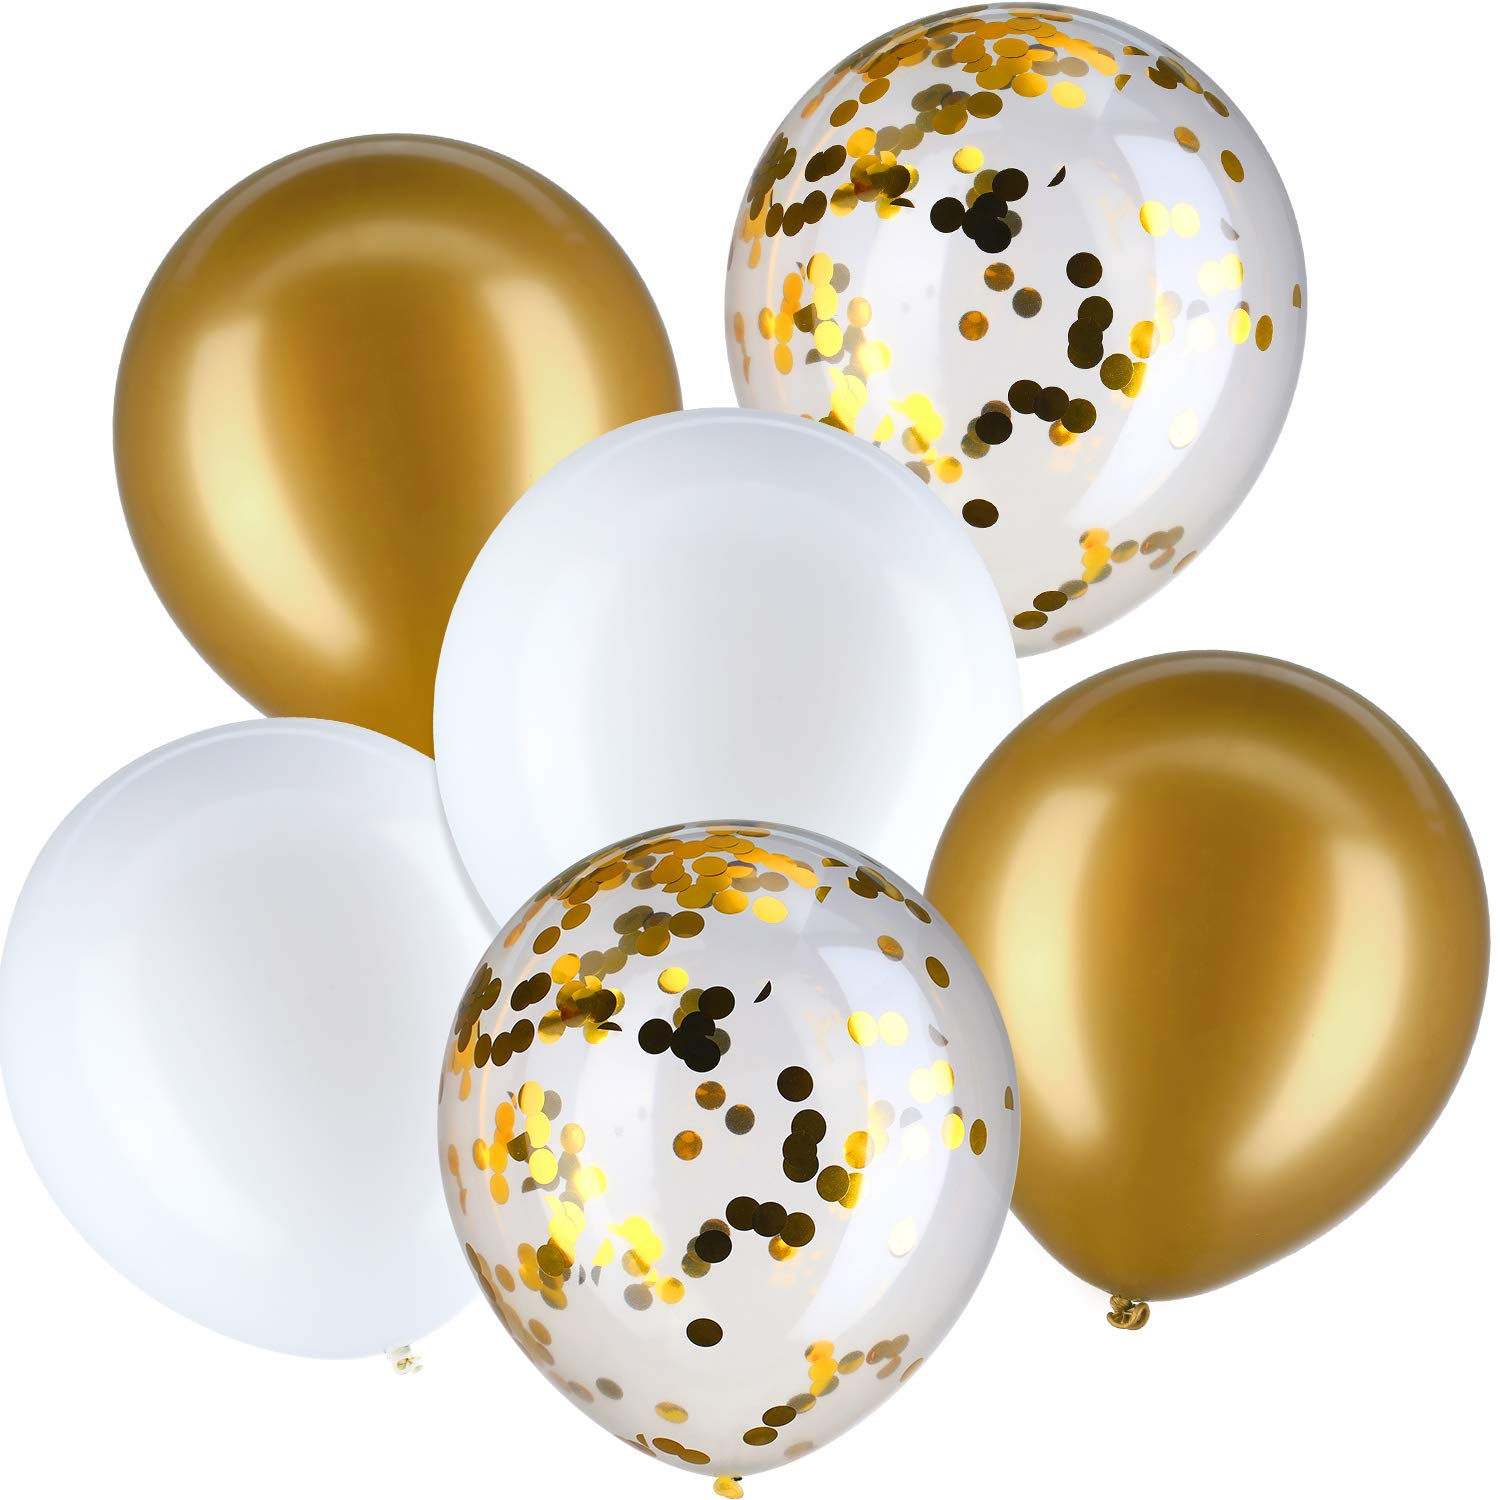 Jovitec 30 Pieces 12 Inches Latex Balloons Confetti Balloons for Wedding Birthday Party Decoration (Silver and Gold)